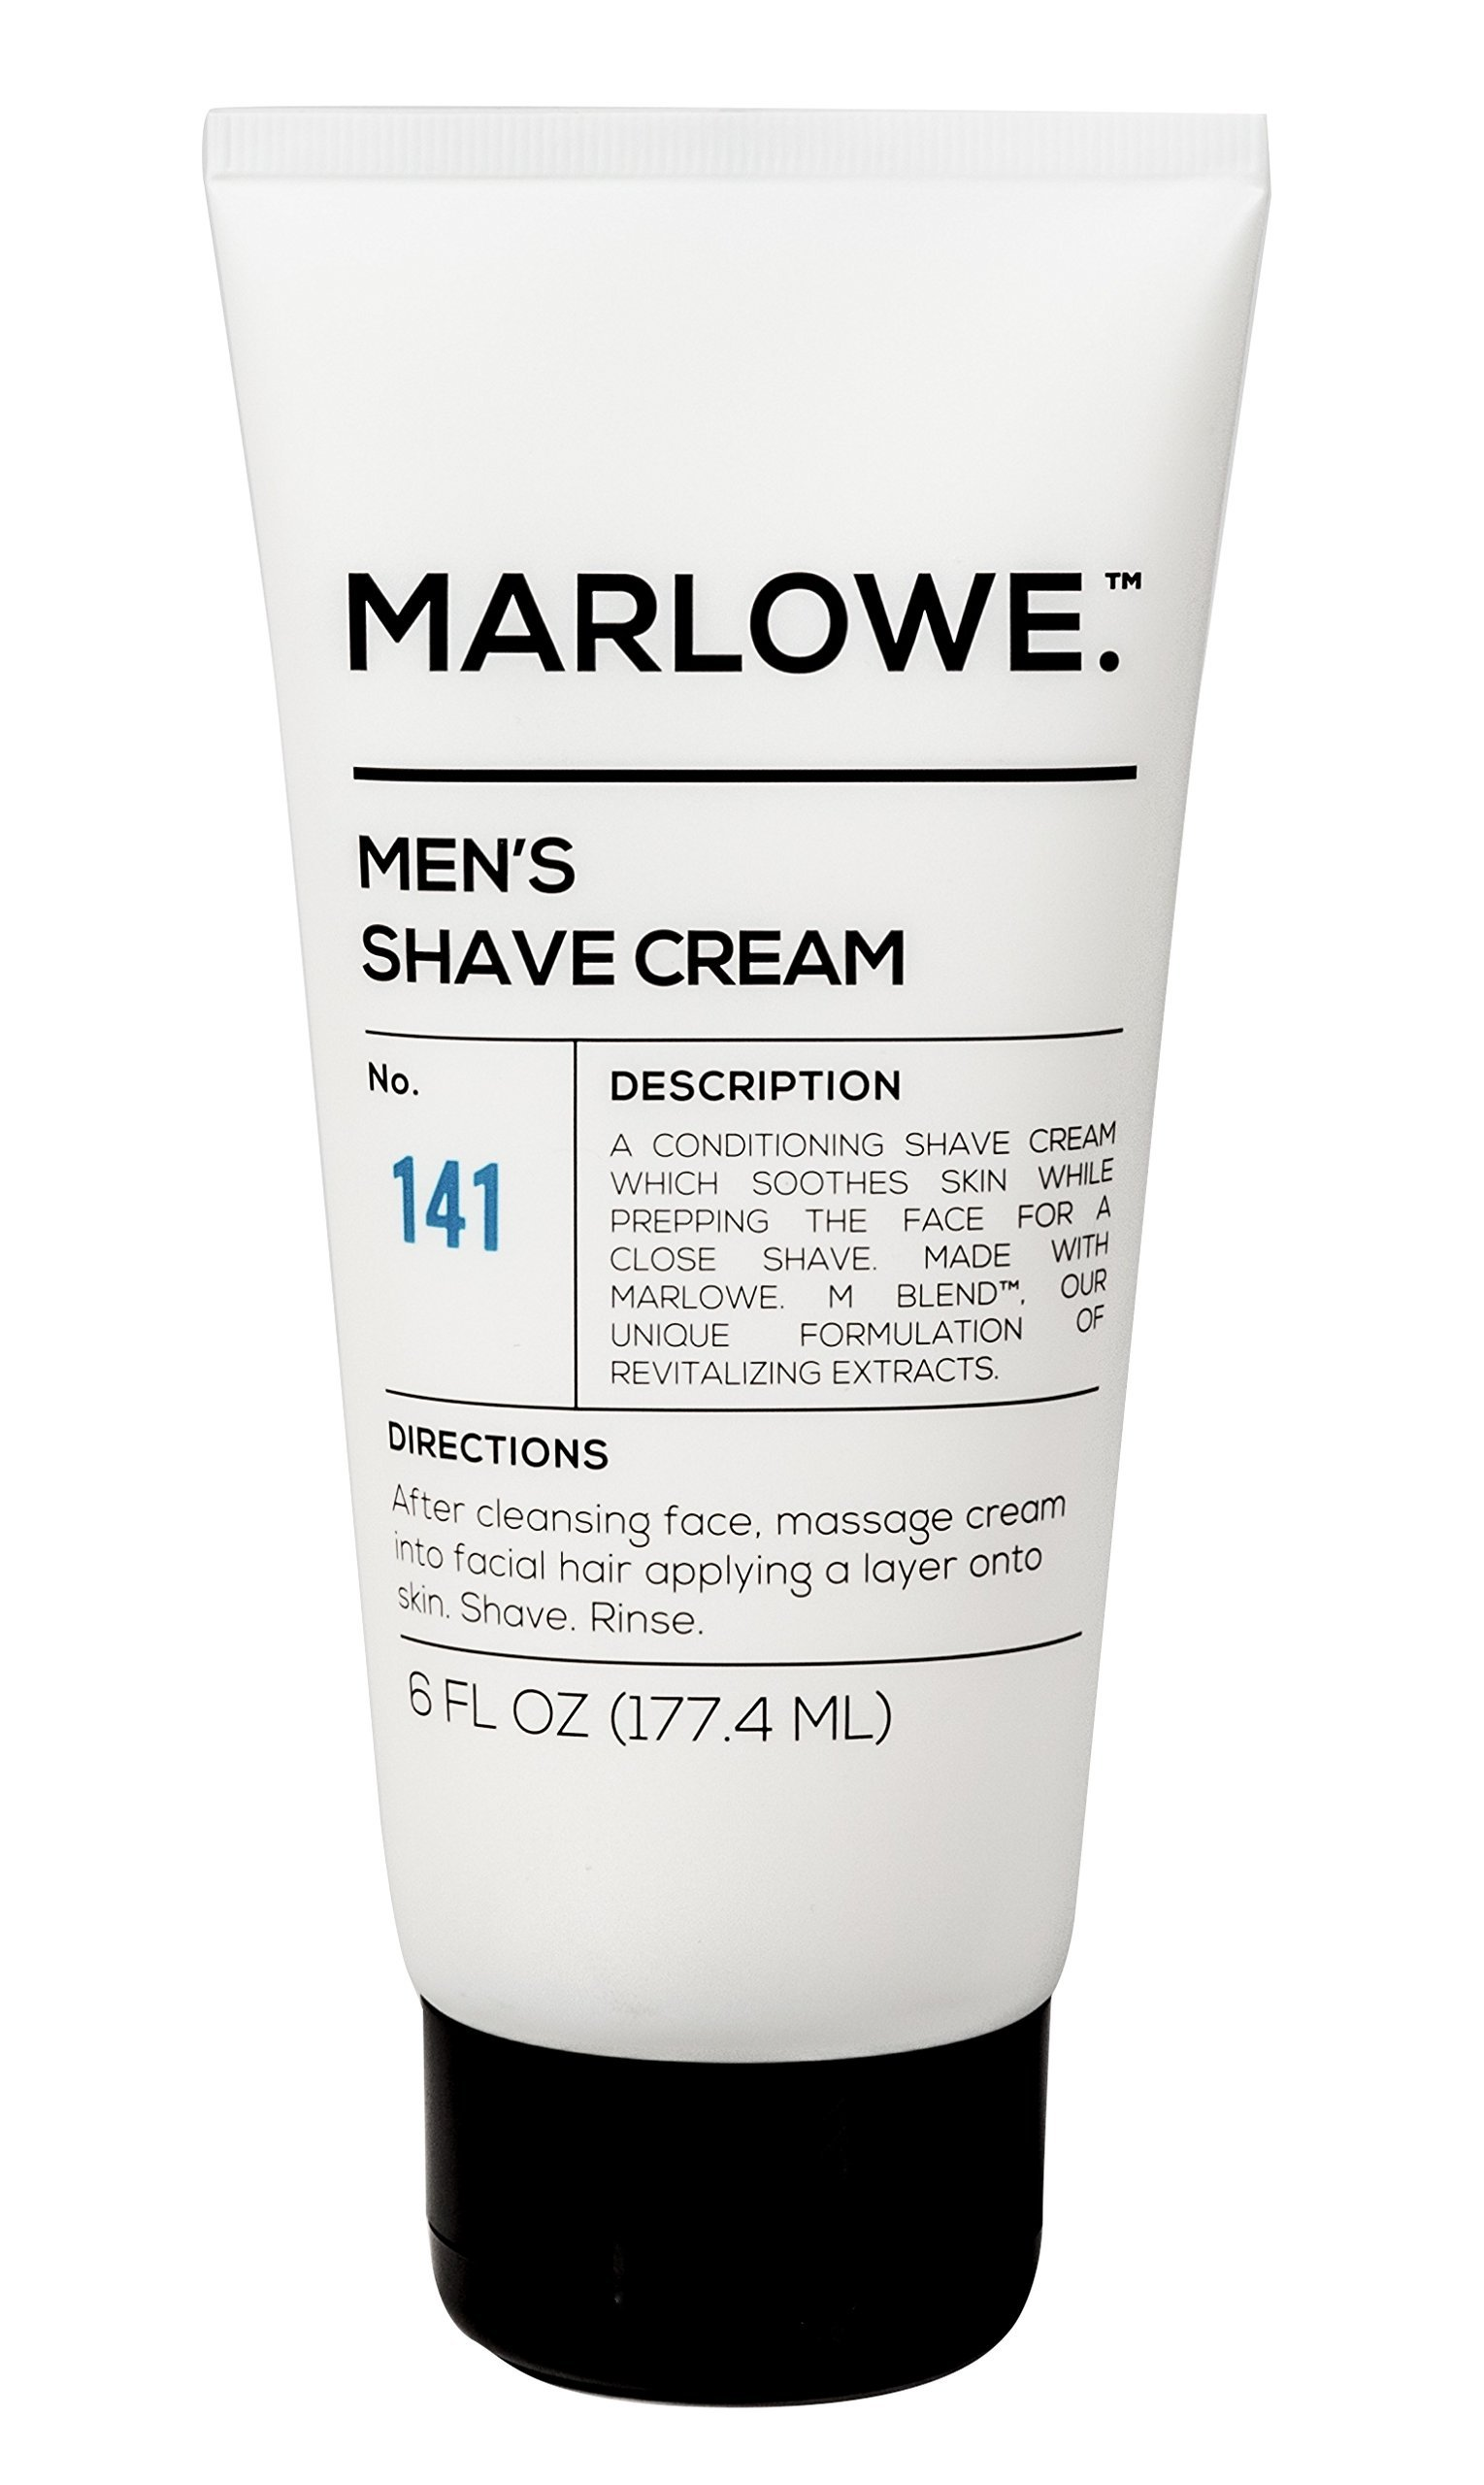 MARLOWE. No. 141 Men's Shave Cream 6 oz | Natural Shea Butter & Coconut Oil Shaving Cream | Aloe & Citrus Scent